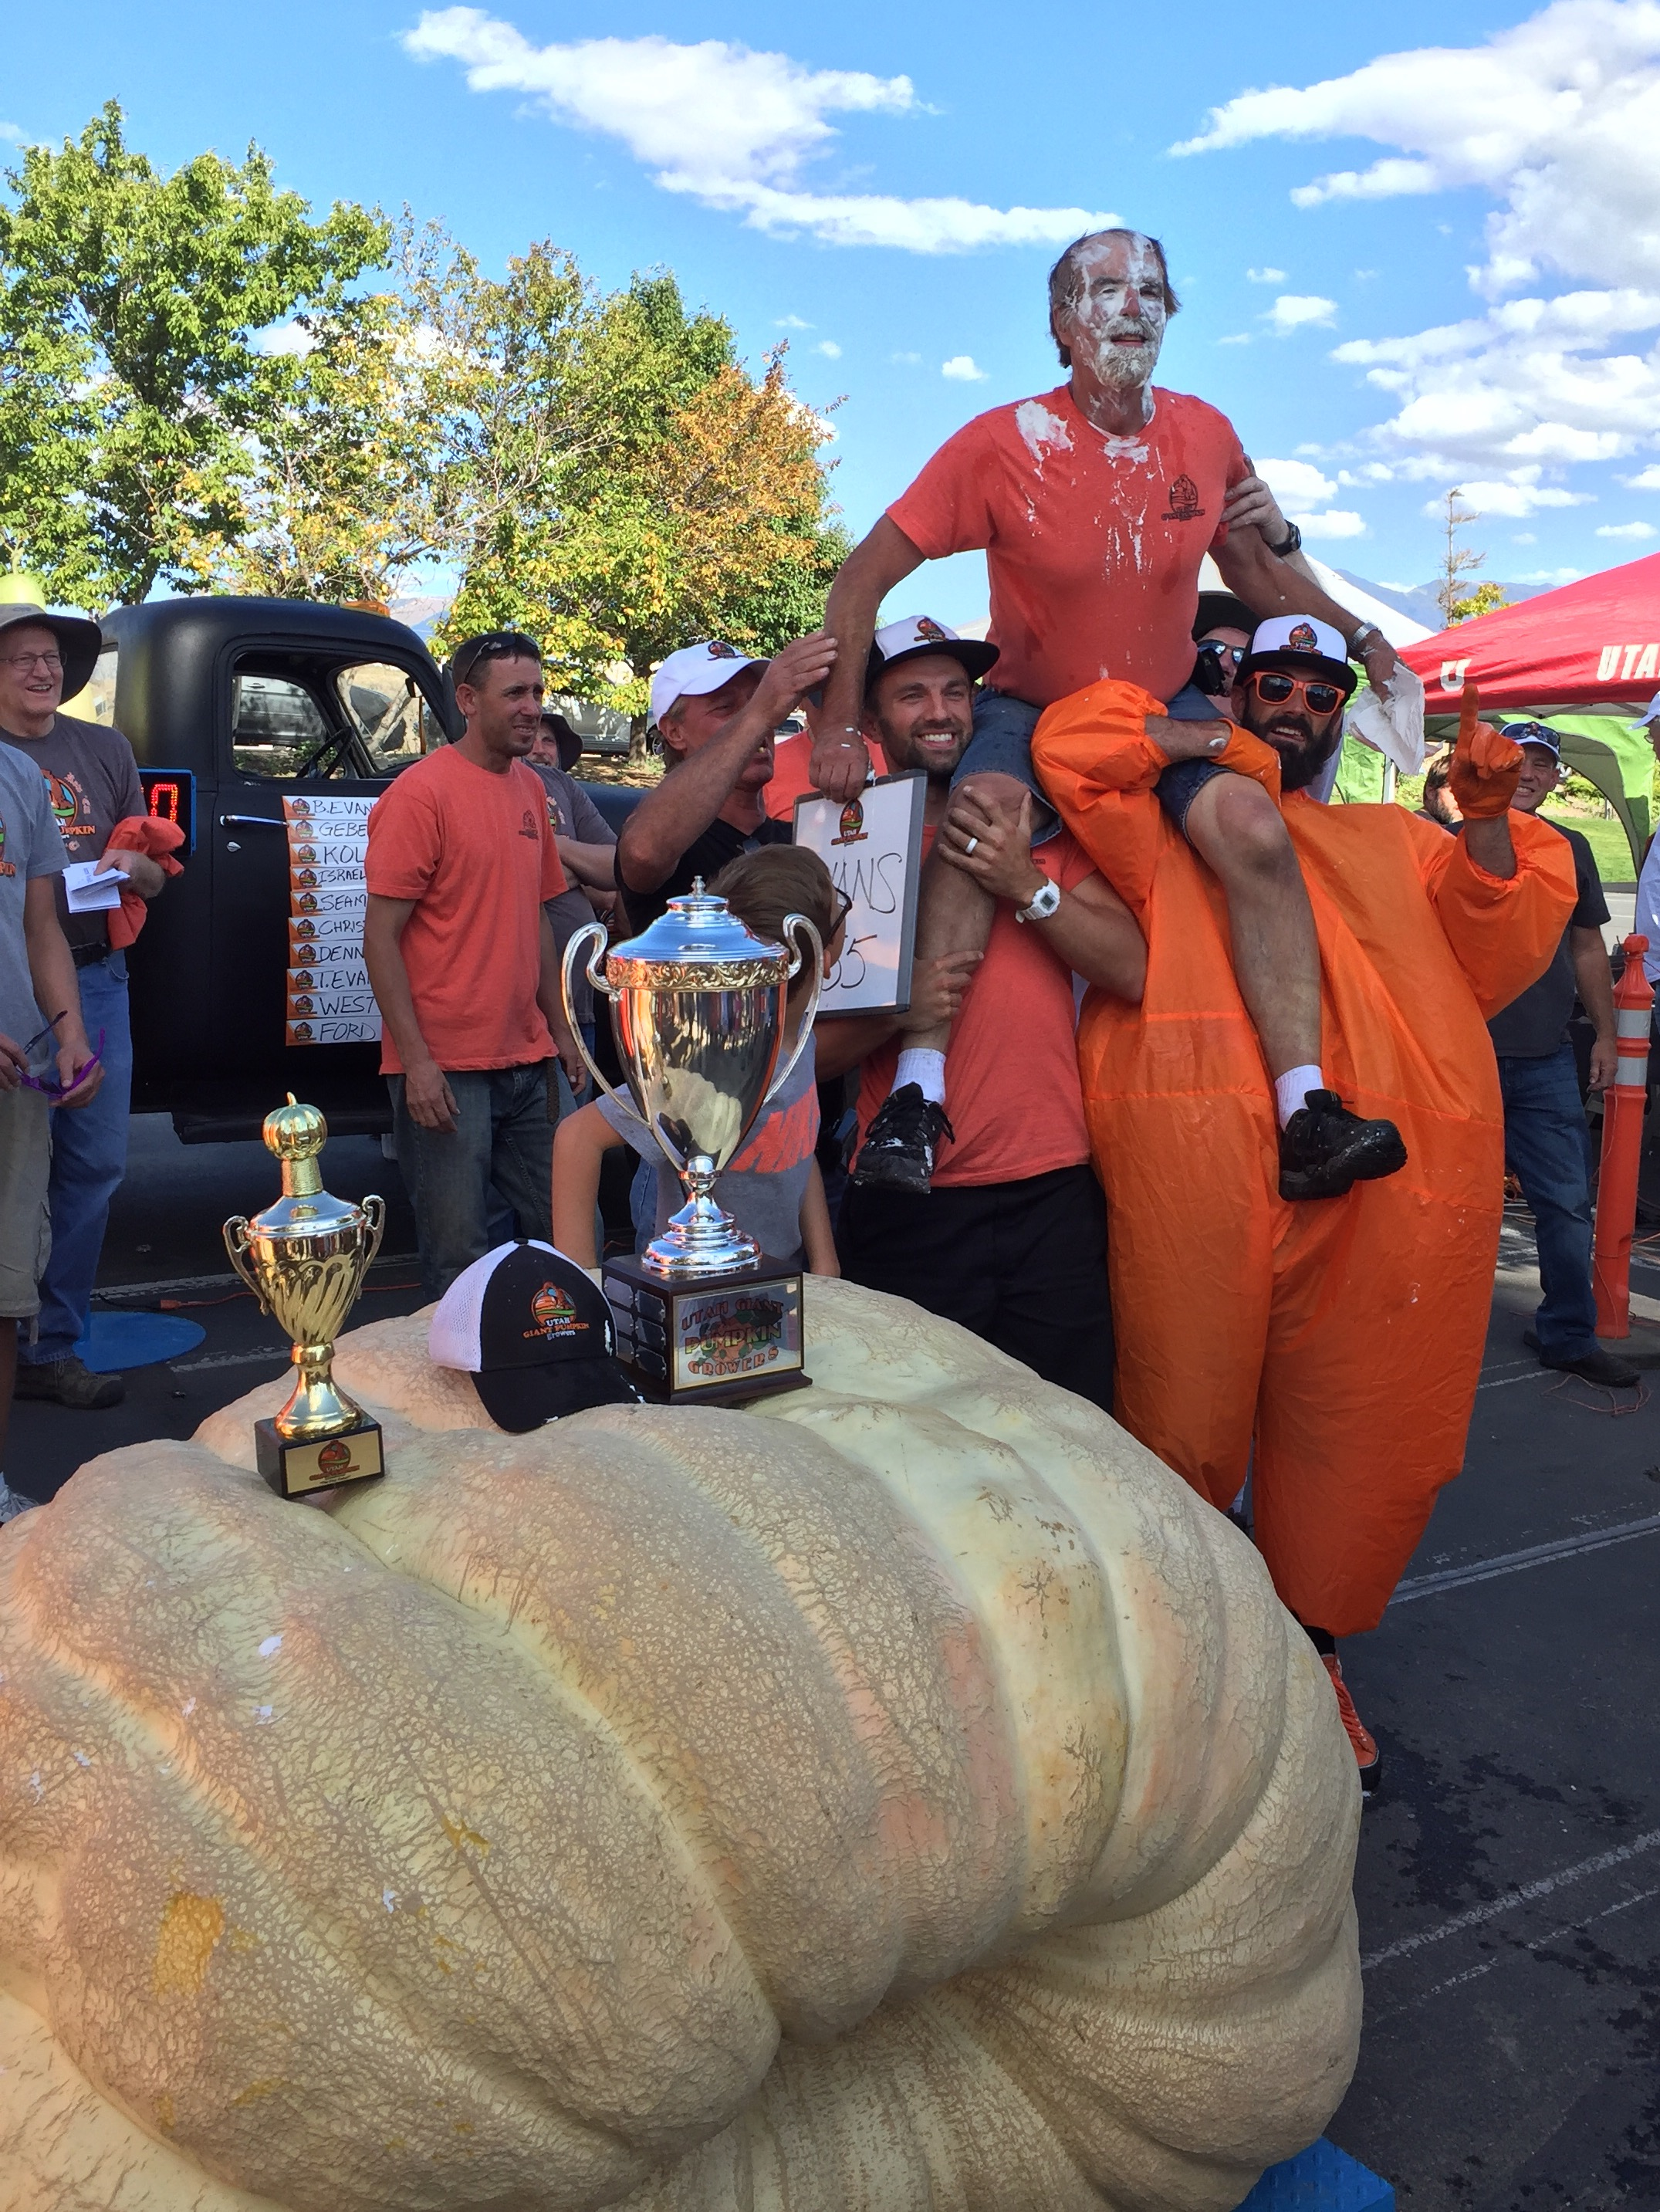 Annual Utah giant pumpkin growing contest draws pumpkin growers from across state (Photo: KUTV)